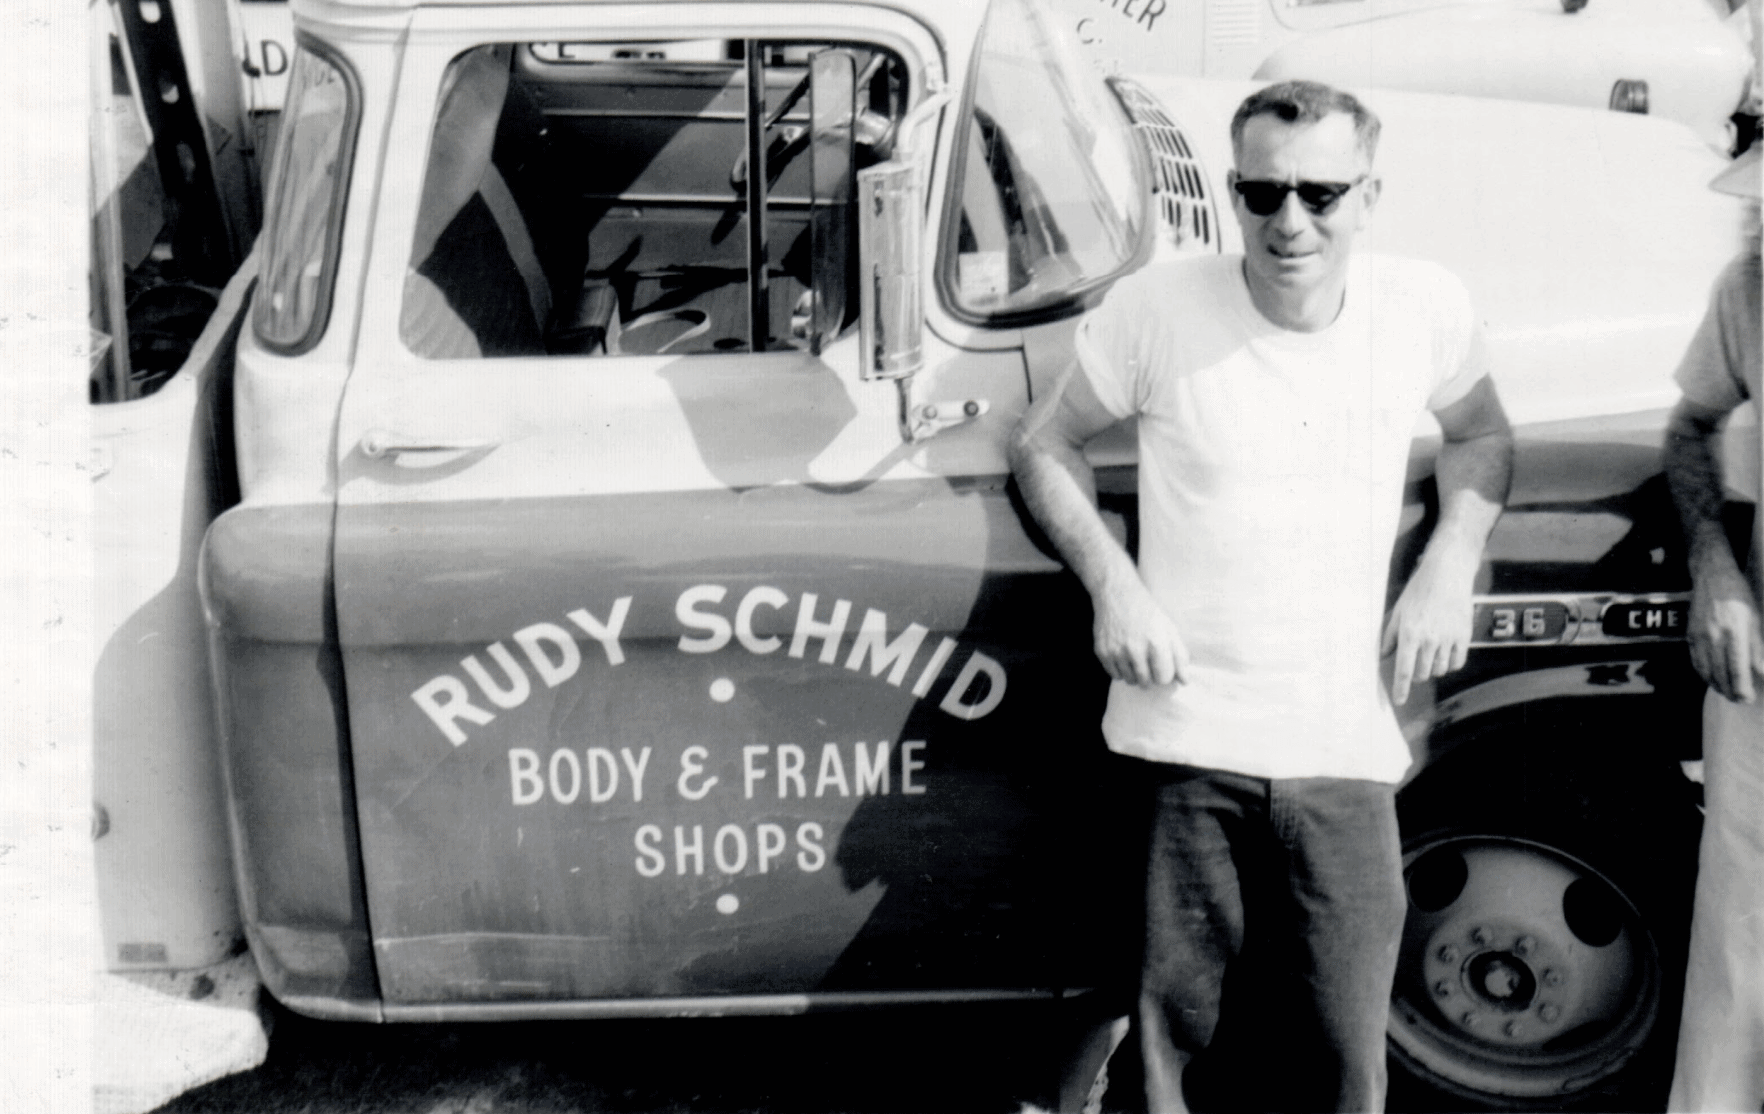 Rudy Schmid body and frame shop photo from Syracuse NY